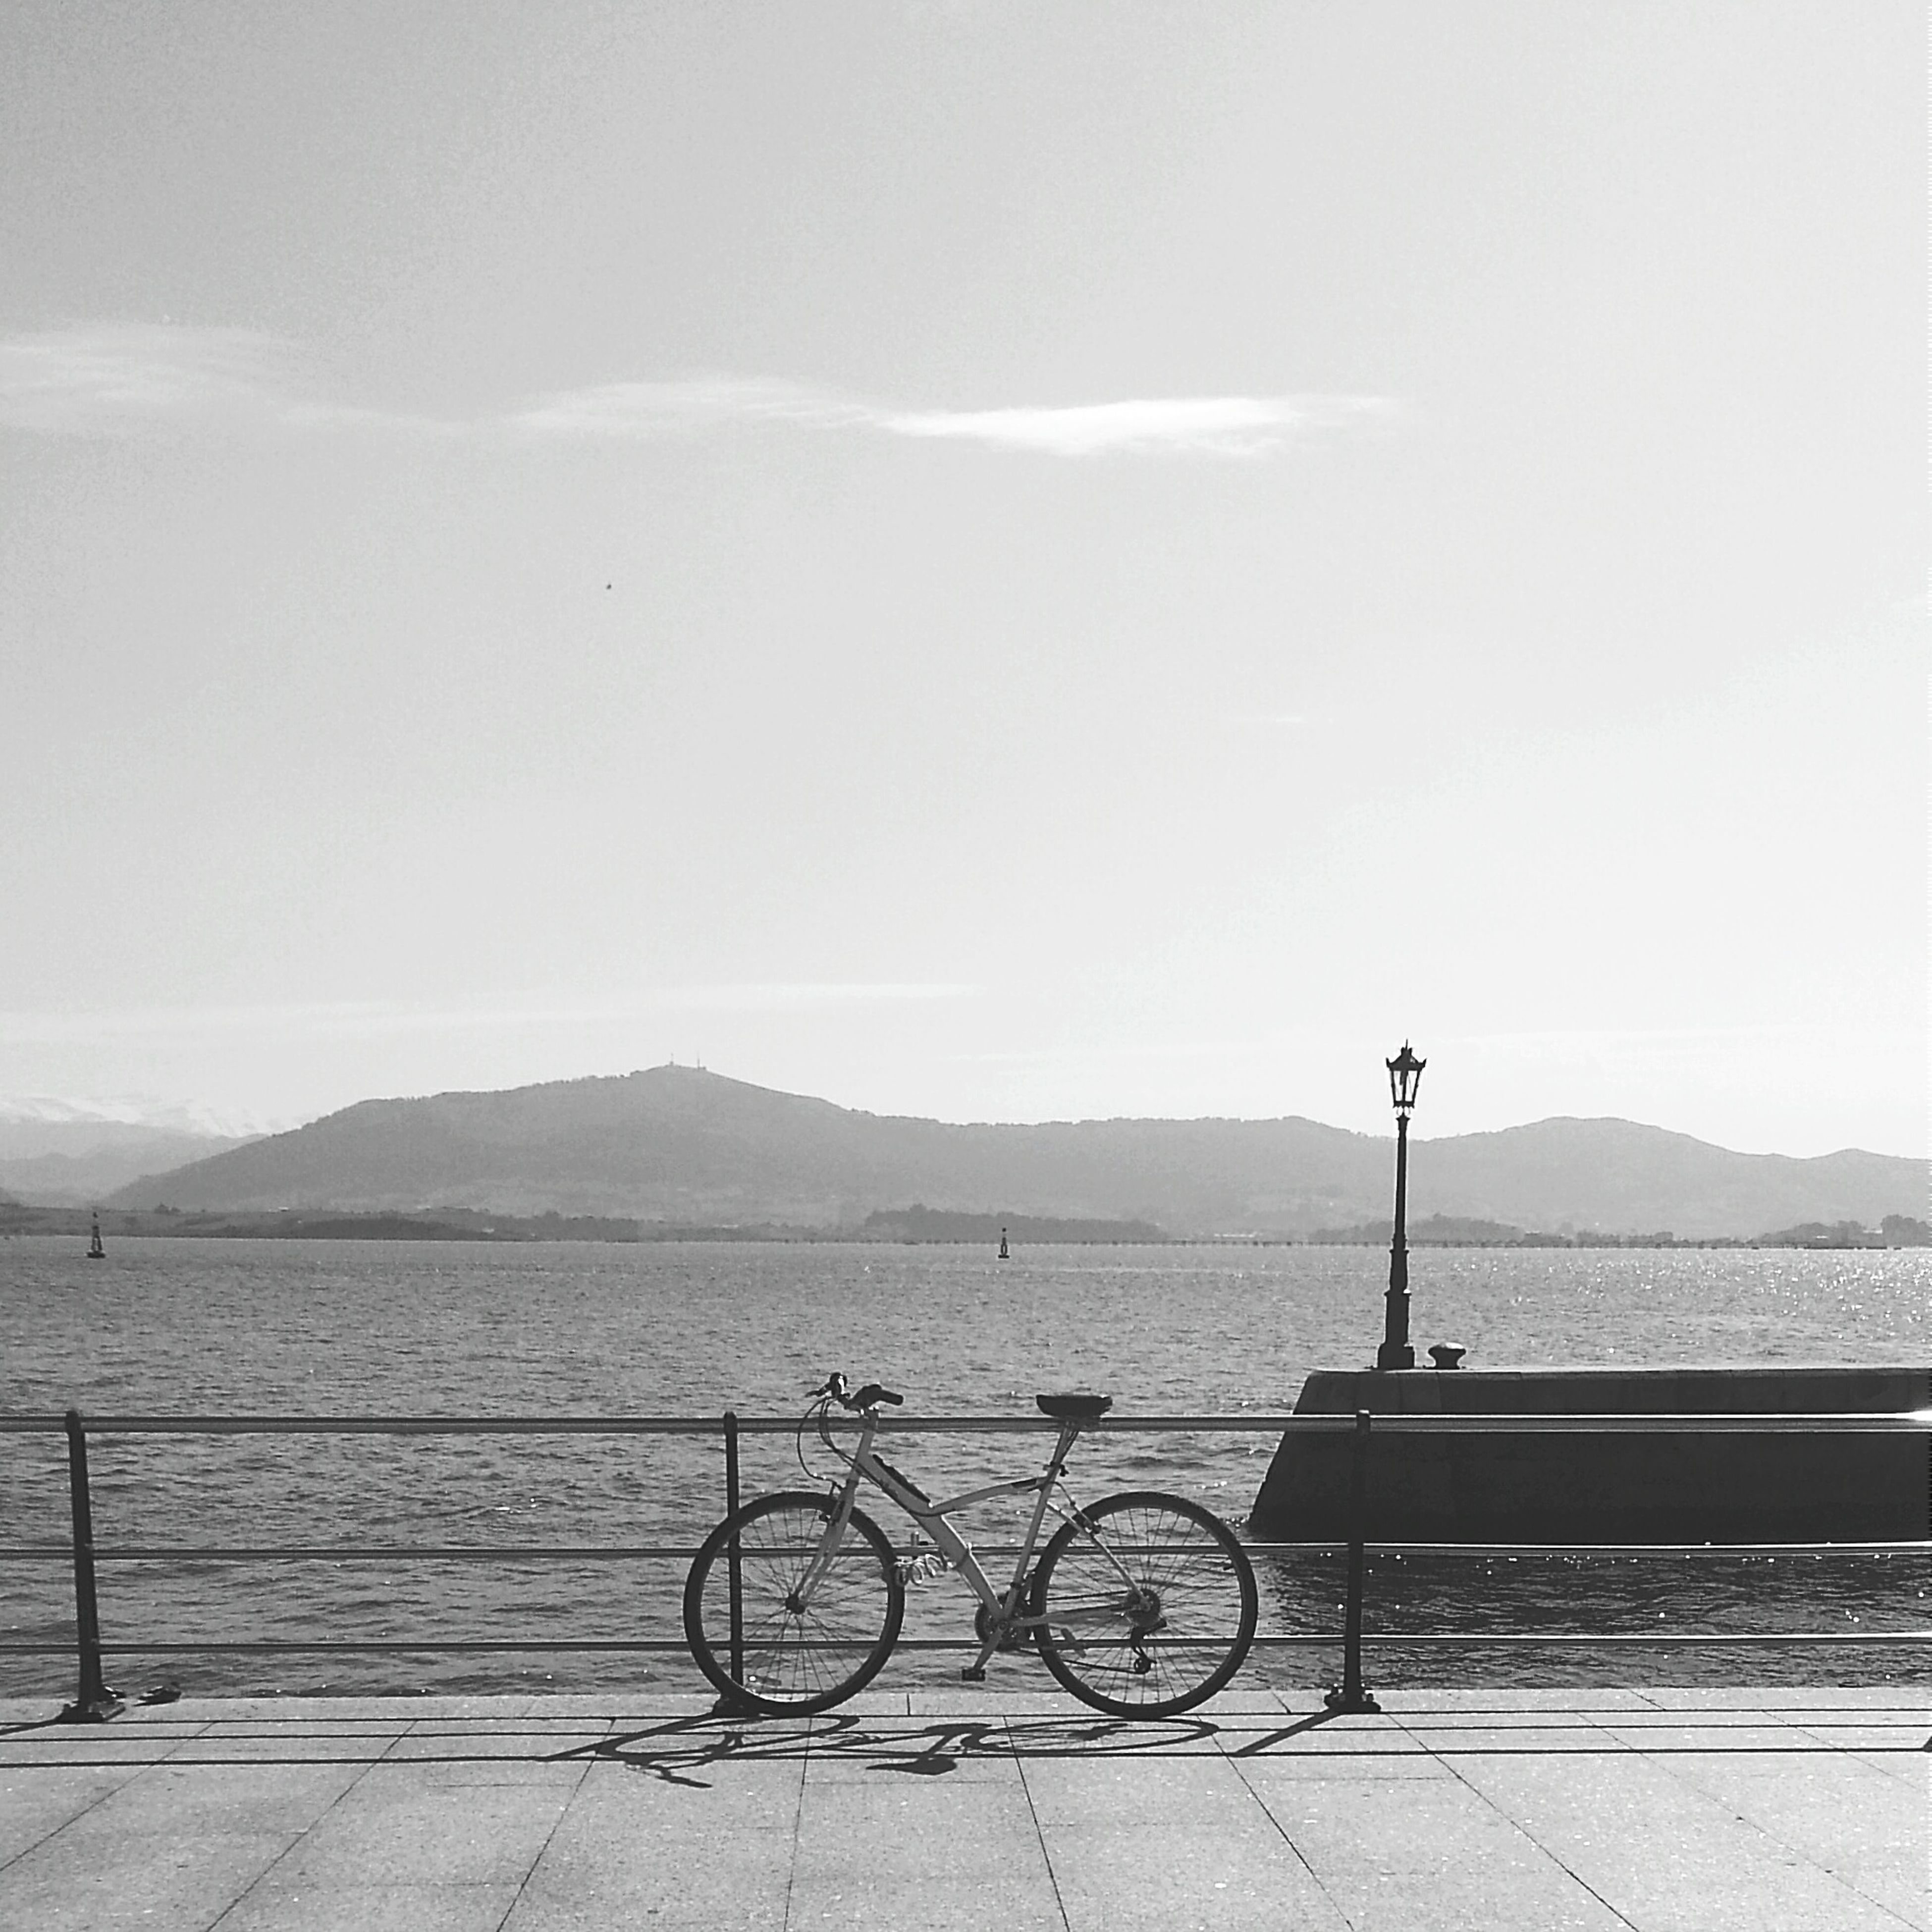 railing, mountain, transportation, sky, sea, water, tranquility, bicycle, tranquil scene, mountain range, scenics, nature, beauty in nature, road, mode of transport, copy space, clear sky, land vehicle, outdoors, day